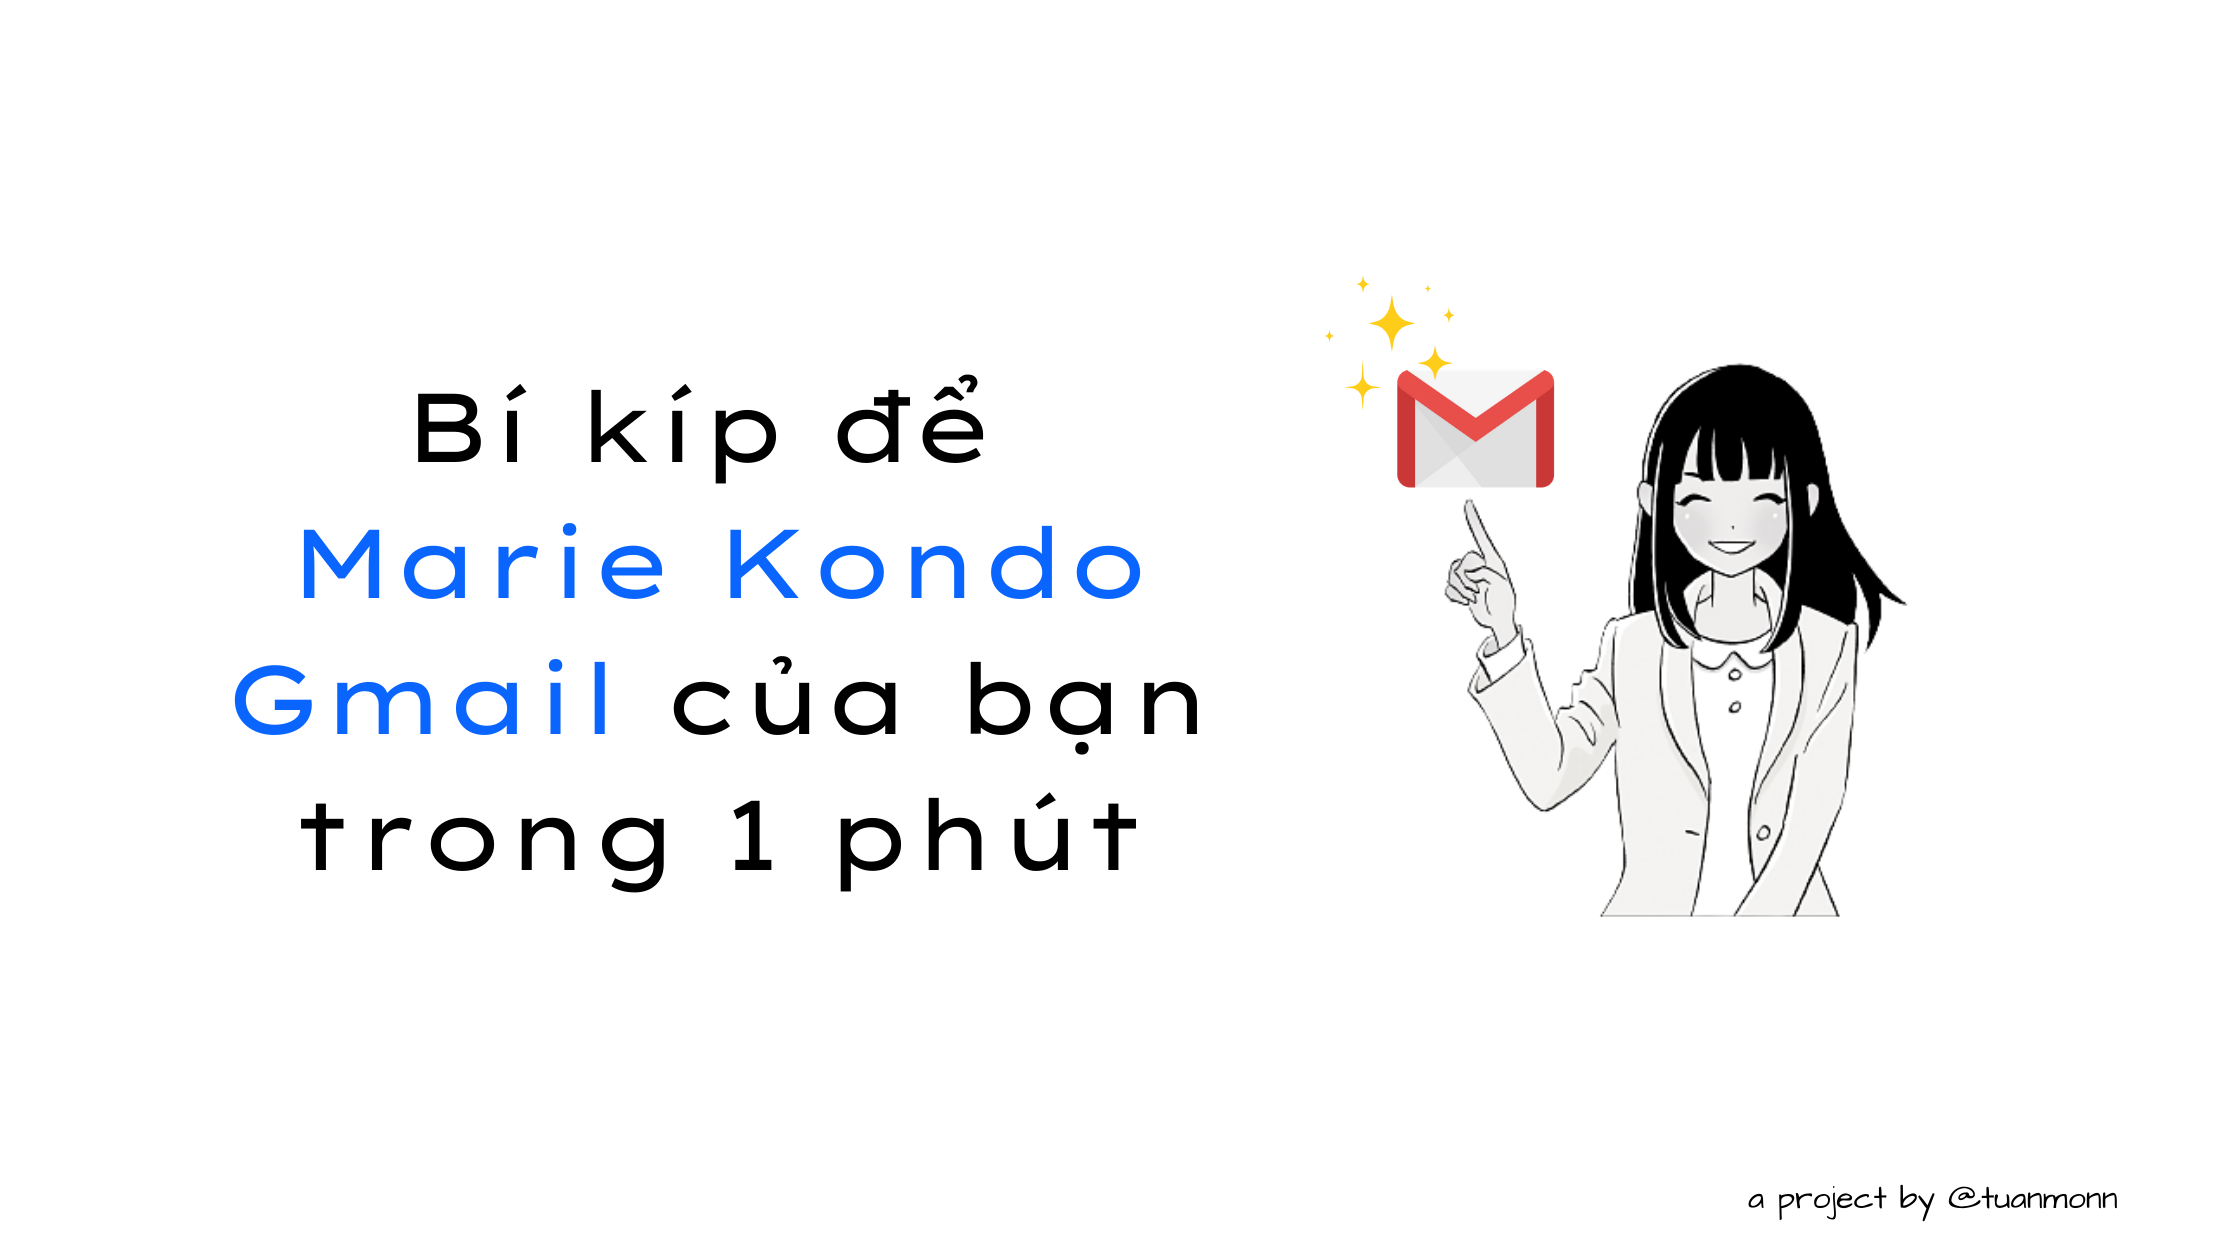 marie-kondo-email